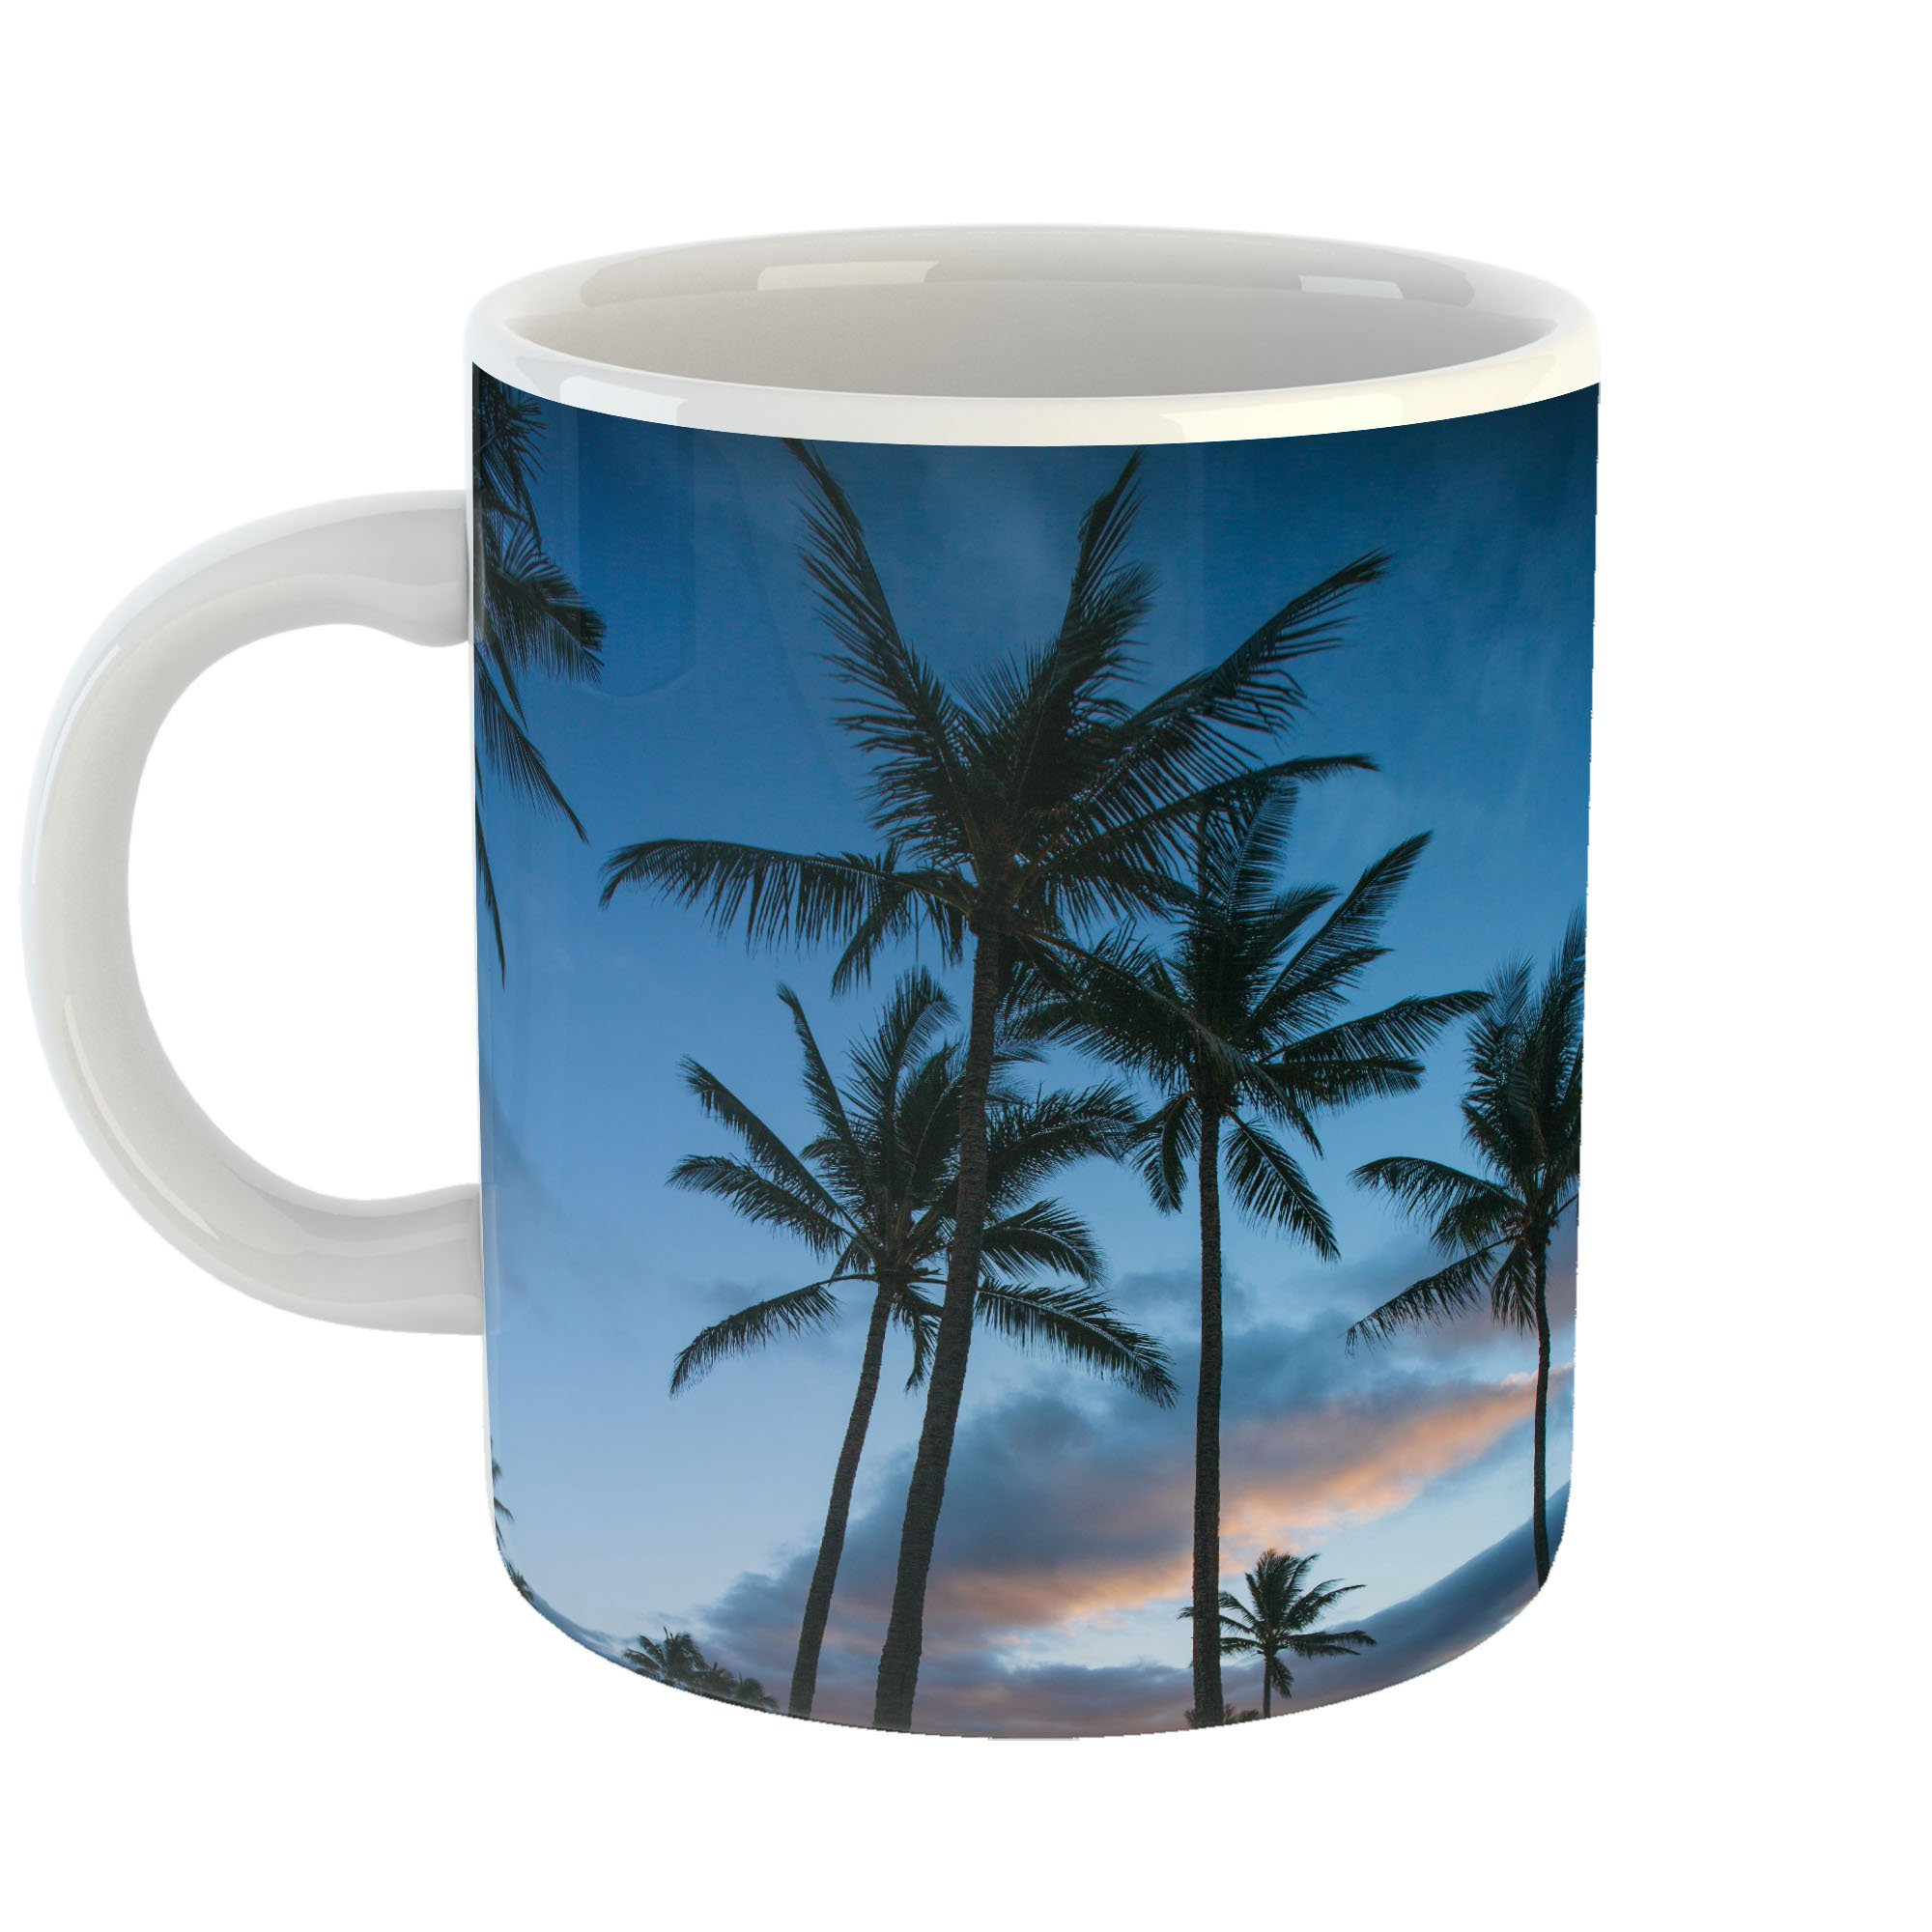 Westlake Art - Musecam Hotel - 11oz Coffee Cup Mug - Modern Picture Photography Artwork Home Office Birthday Gift - 11 Ounce (DD20-6167B)